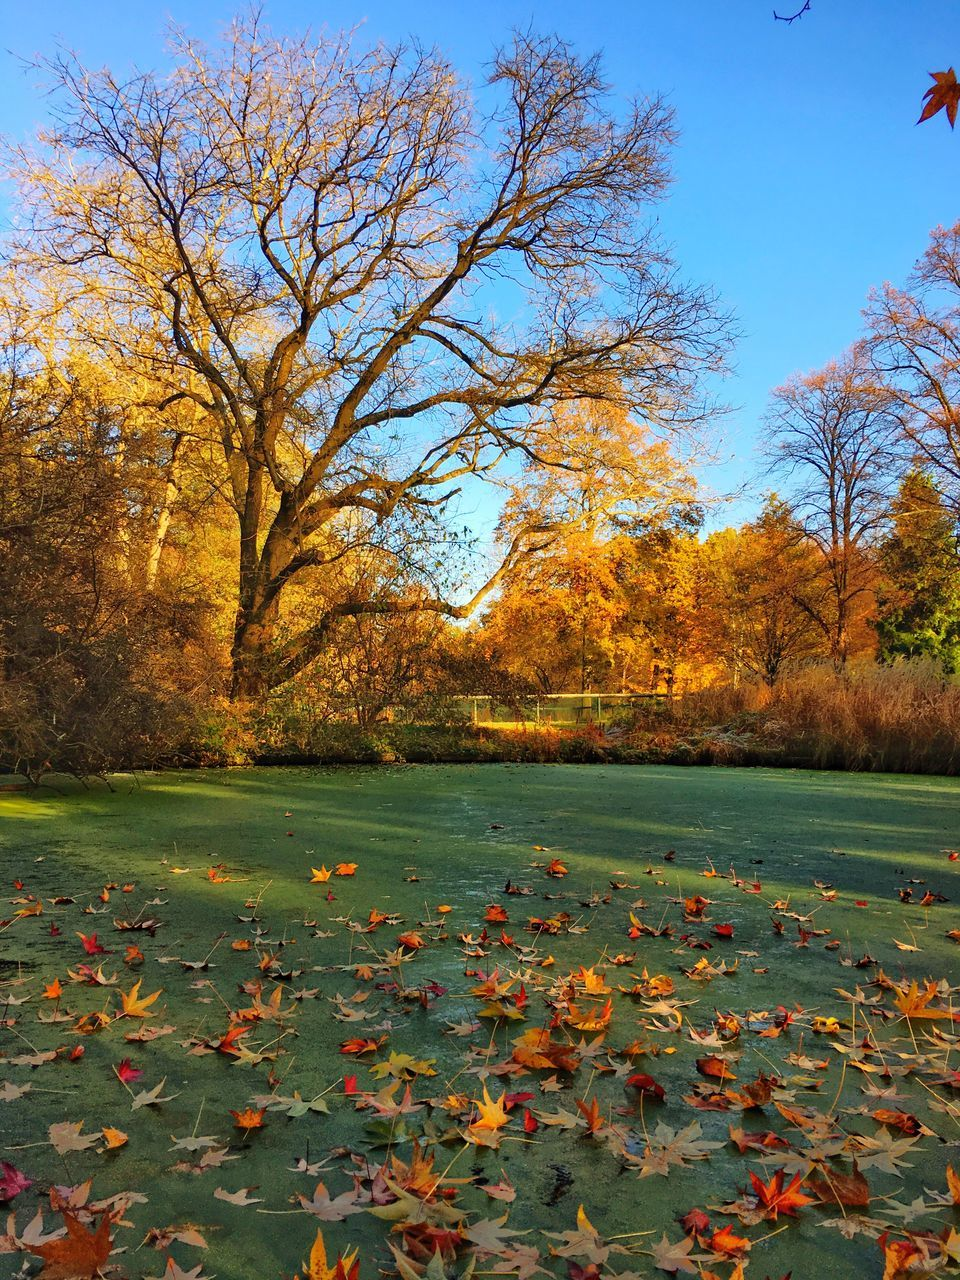 autumn, change, leaf, tree, beauty in nature, nature, orange color, tranquility, scenics, day, outdoors, no people, tranquil scene, maple leaf, fallen, maple, field, growth, bare tree, branch, lake, sky, grass